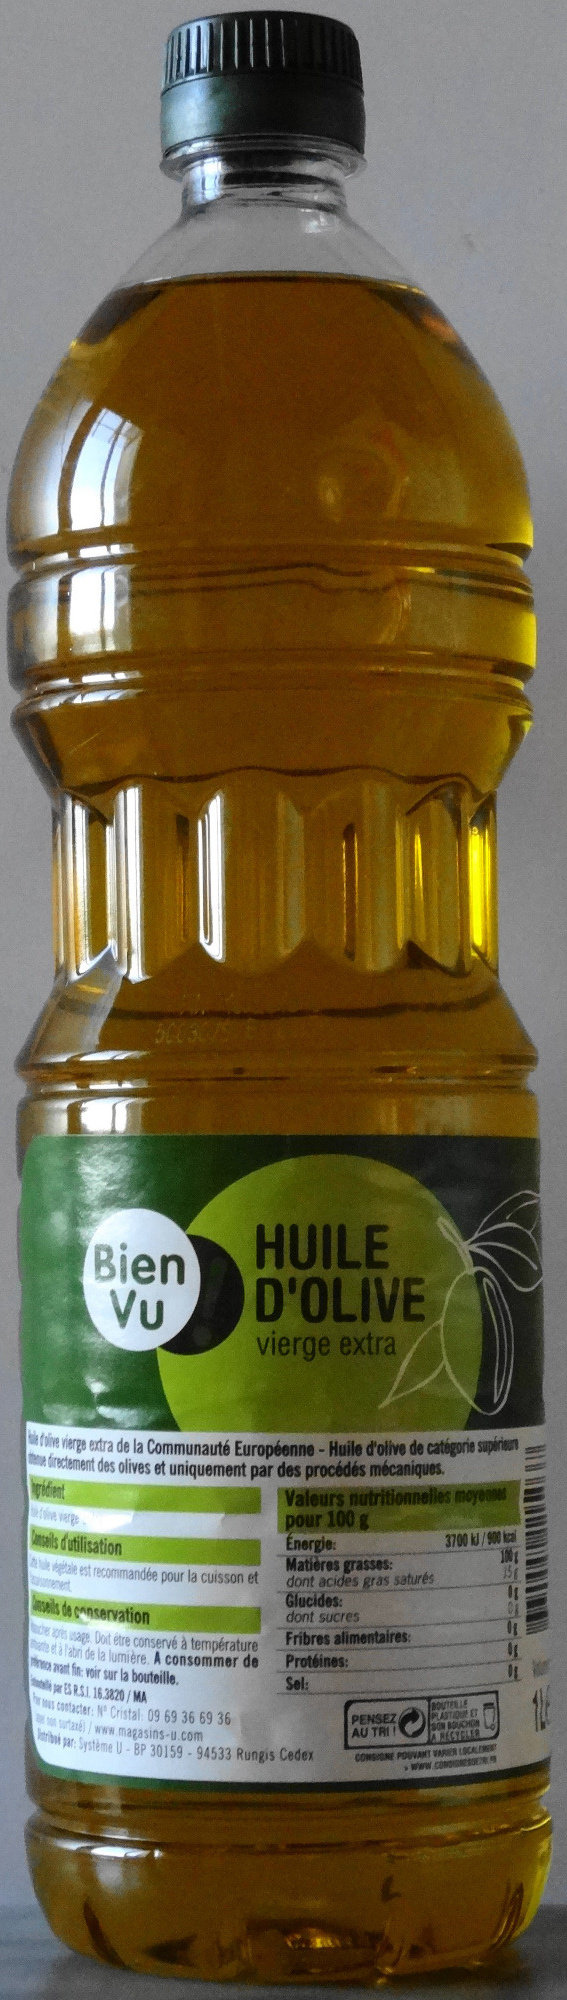 Huile d'Olive, vierge extra - Product - fr